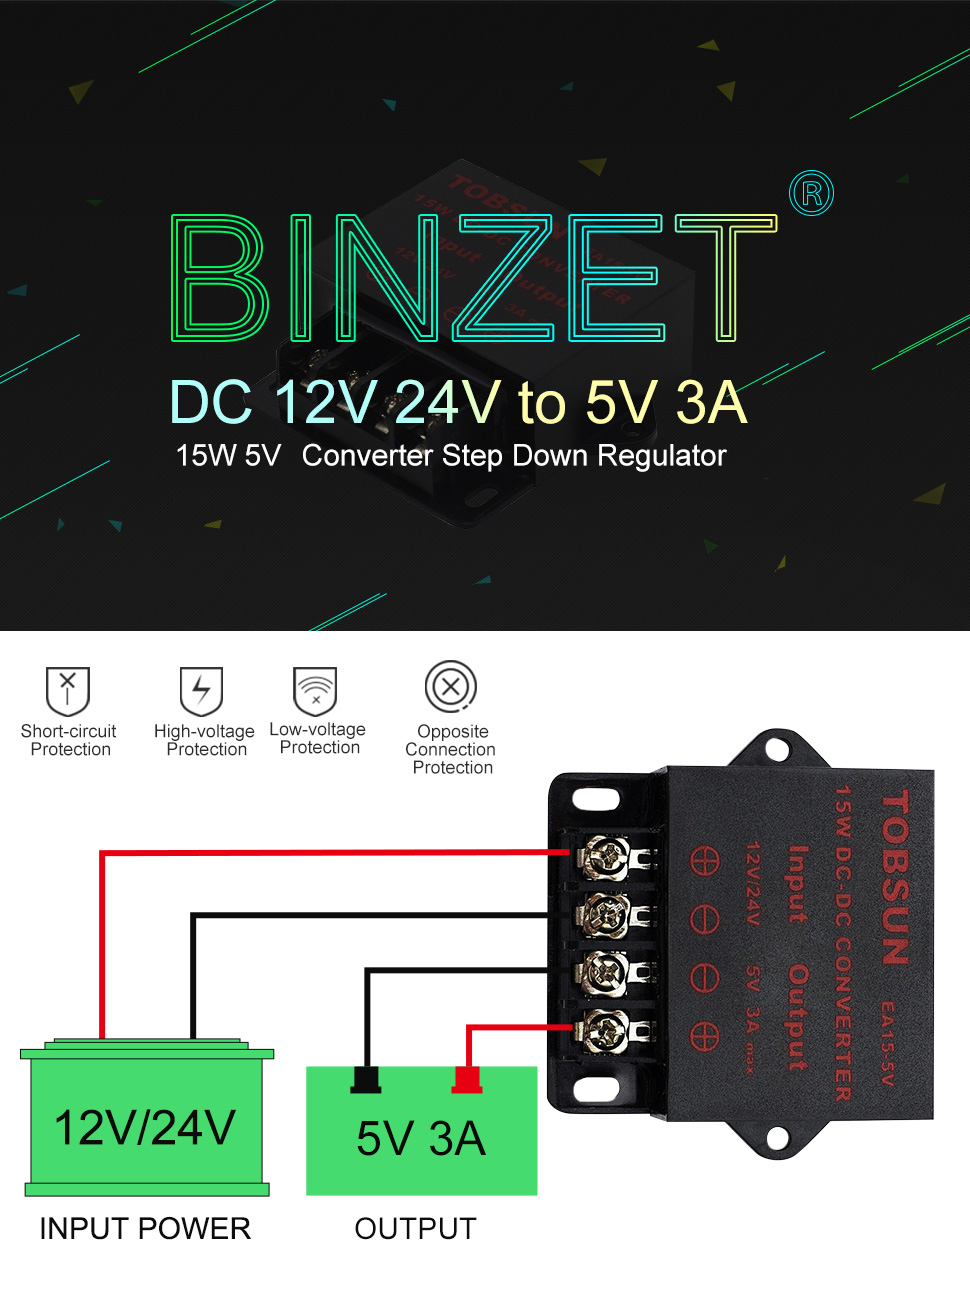 Binzet Dc Converter Step Down Regulator 5v Regulated Power Opamp Voltage With Overvoltage Protection Circuit 3a 15w Over Current Overheat Short And Automatic